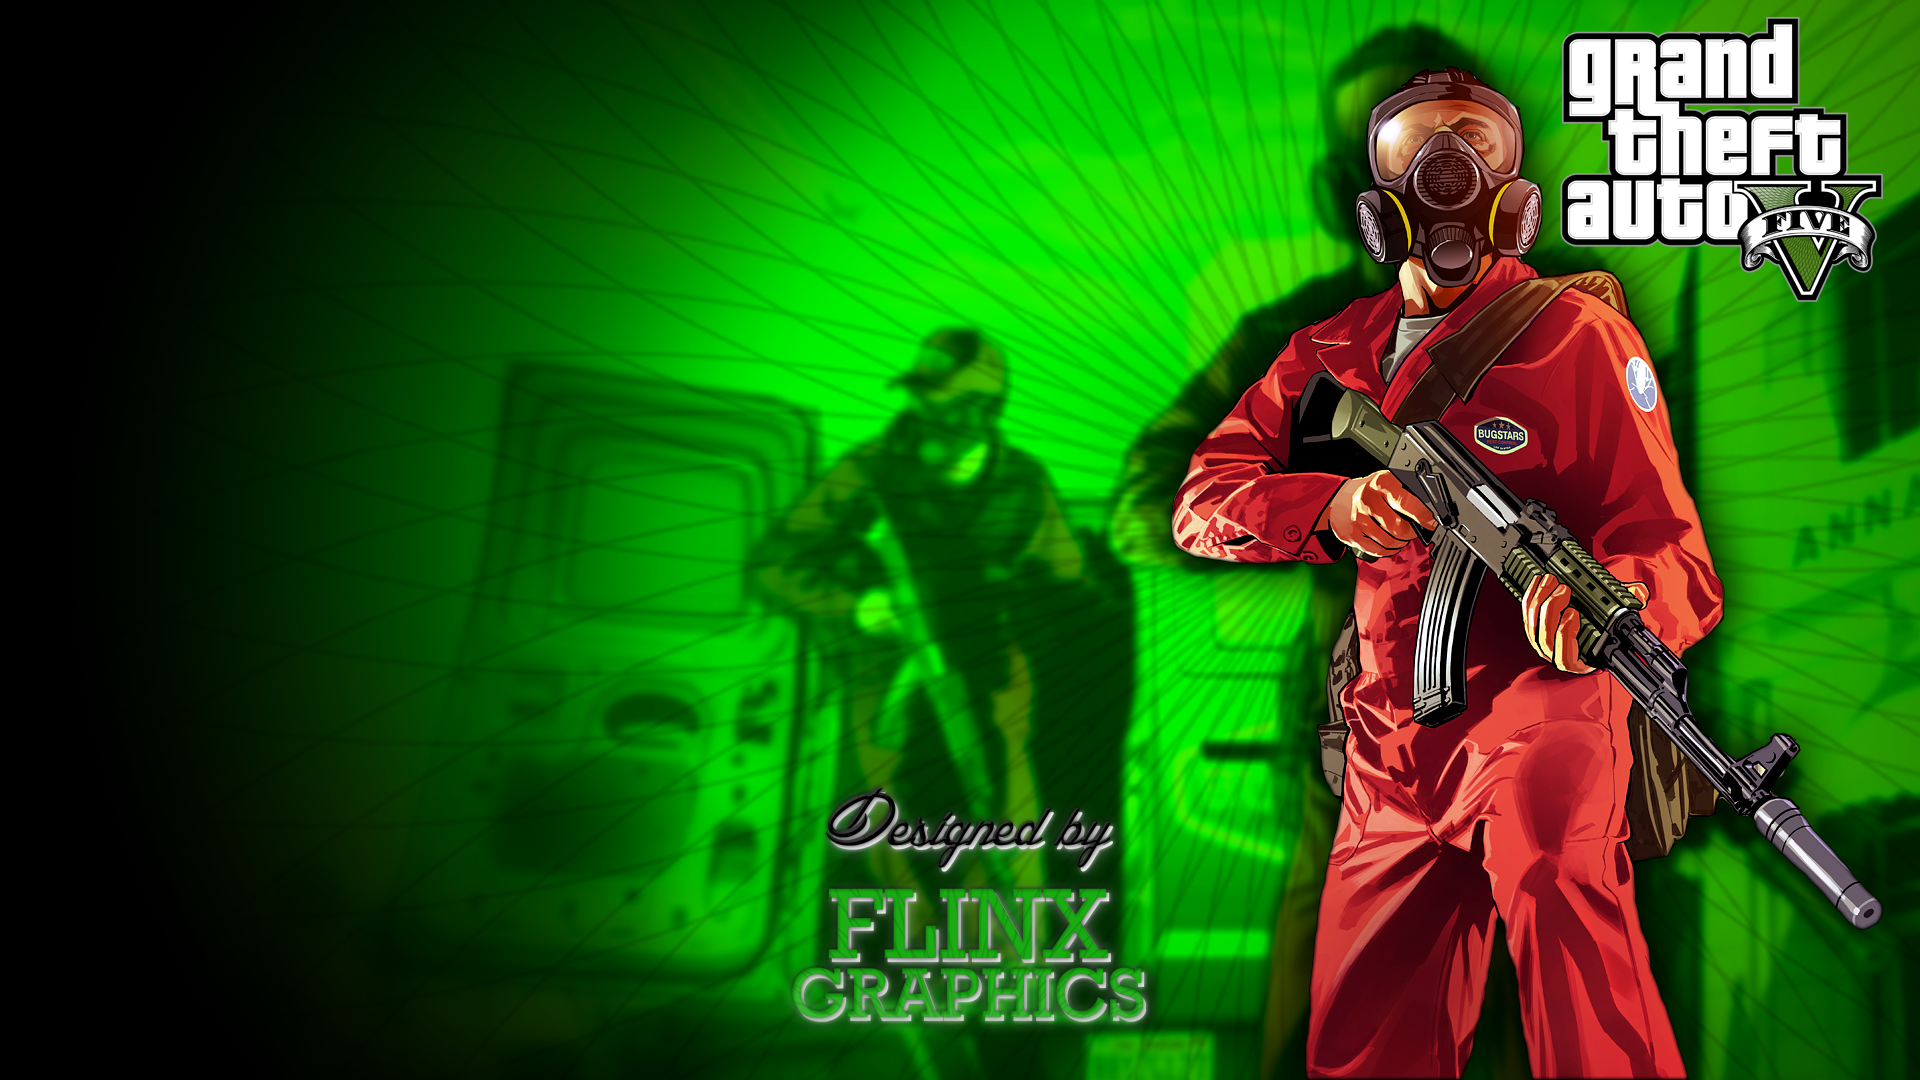 GTA 5 Green Player HD Wallpaper 349 Wallpaper ForWallpaperscom 1920x1080